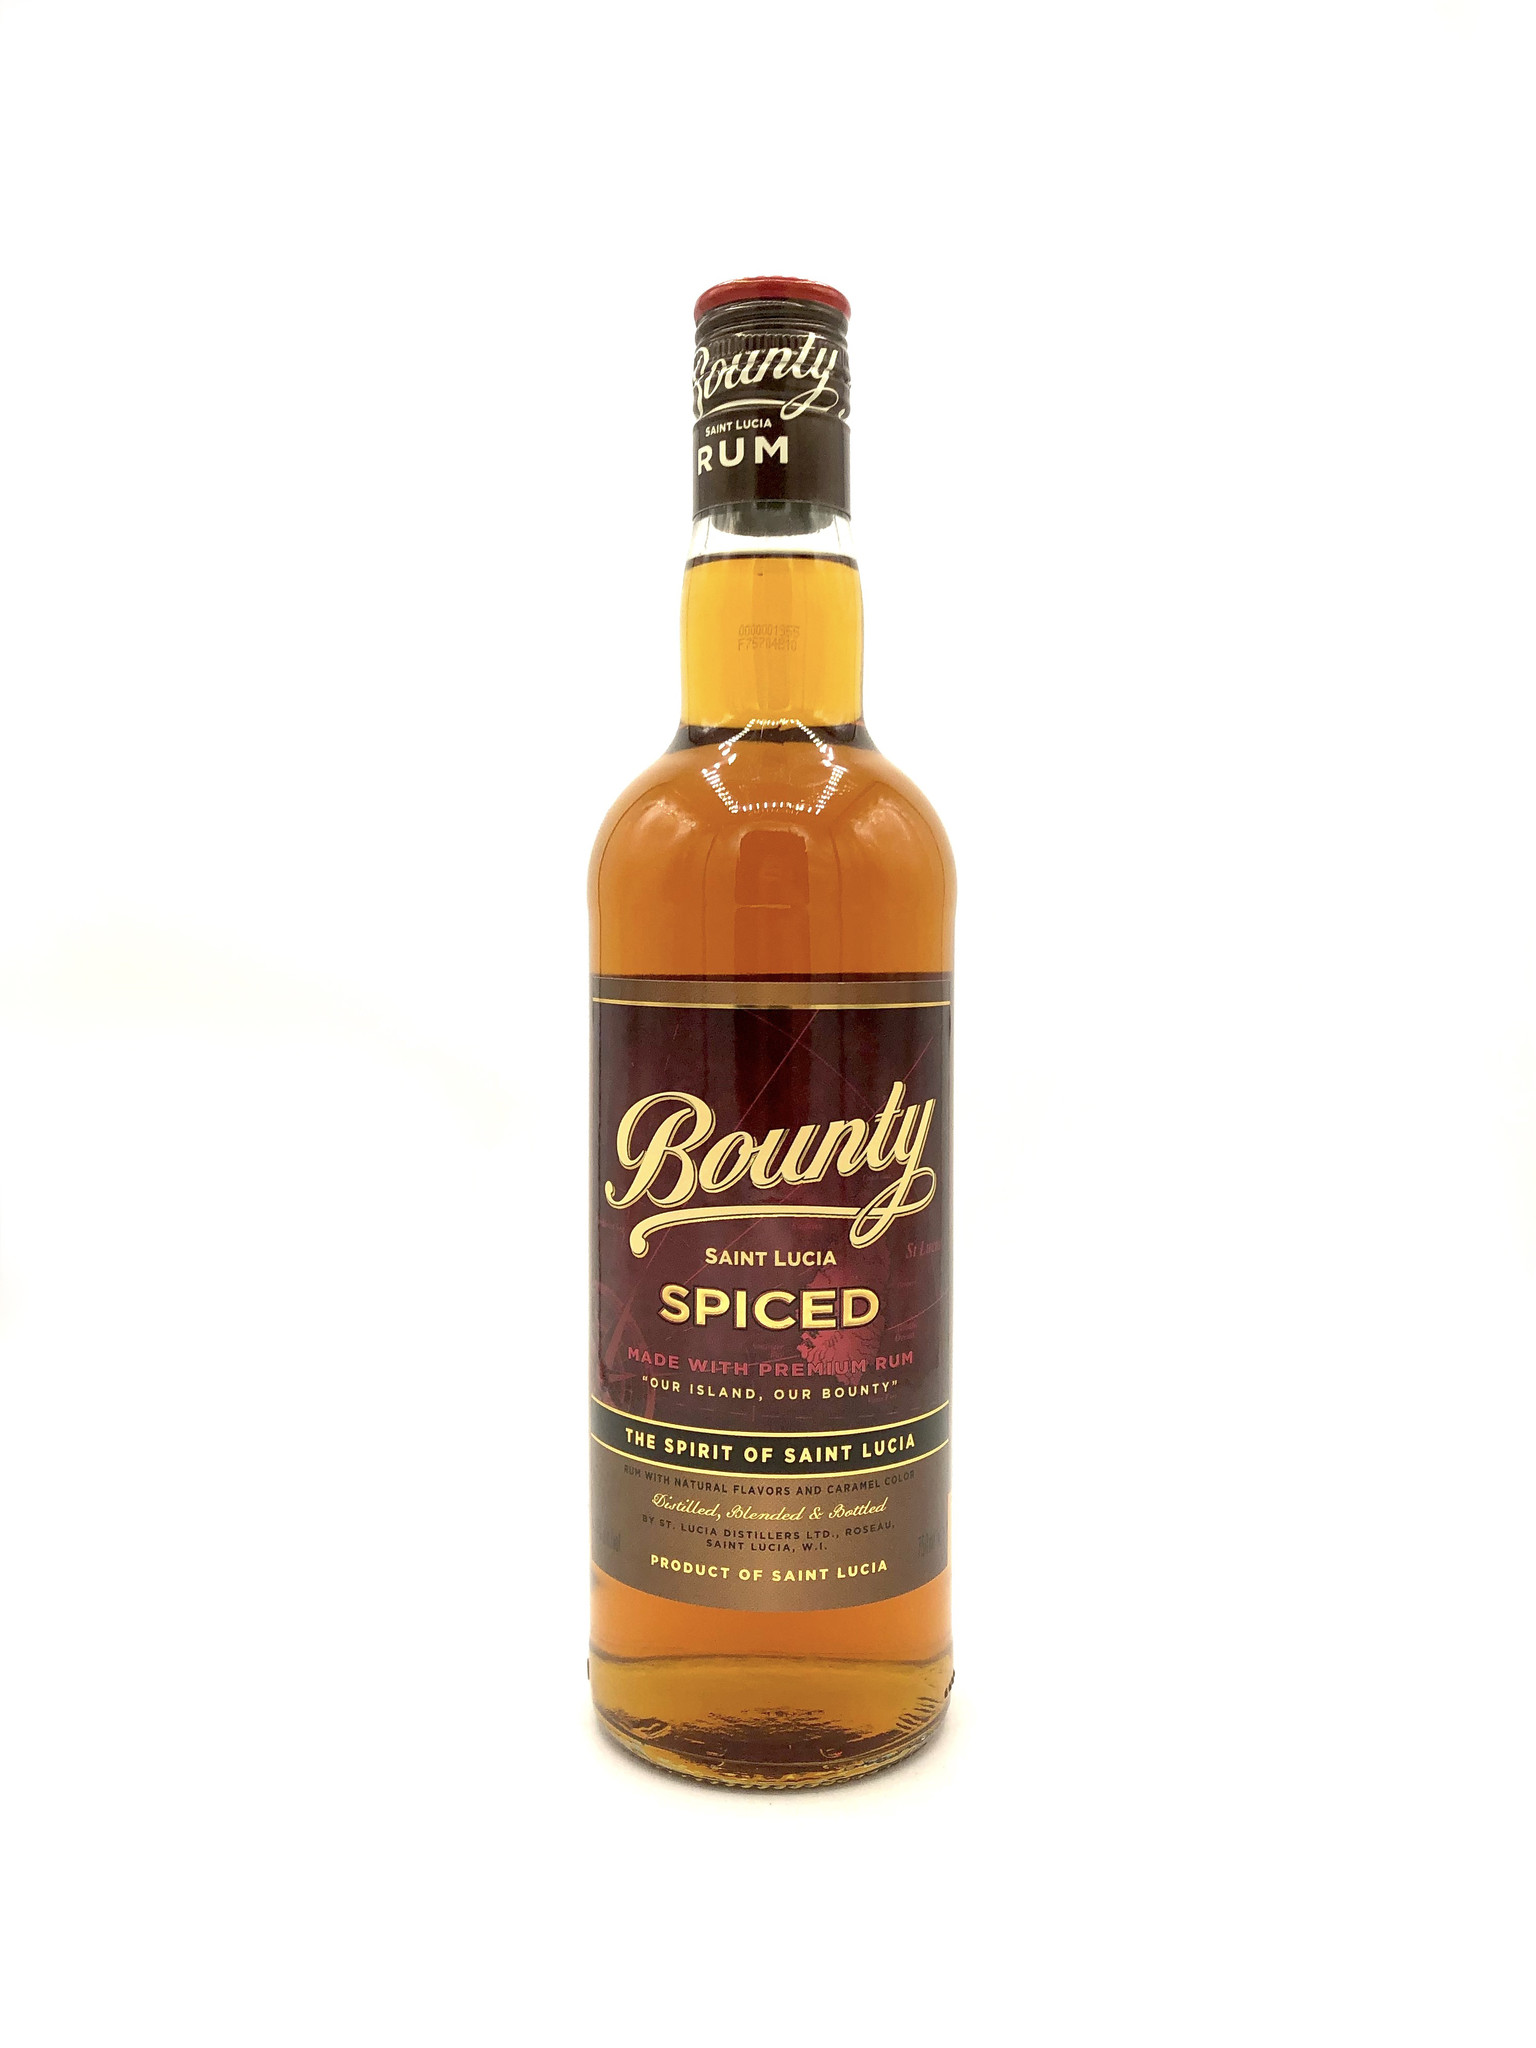 Spiced Rum Bounty